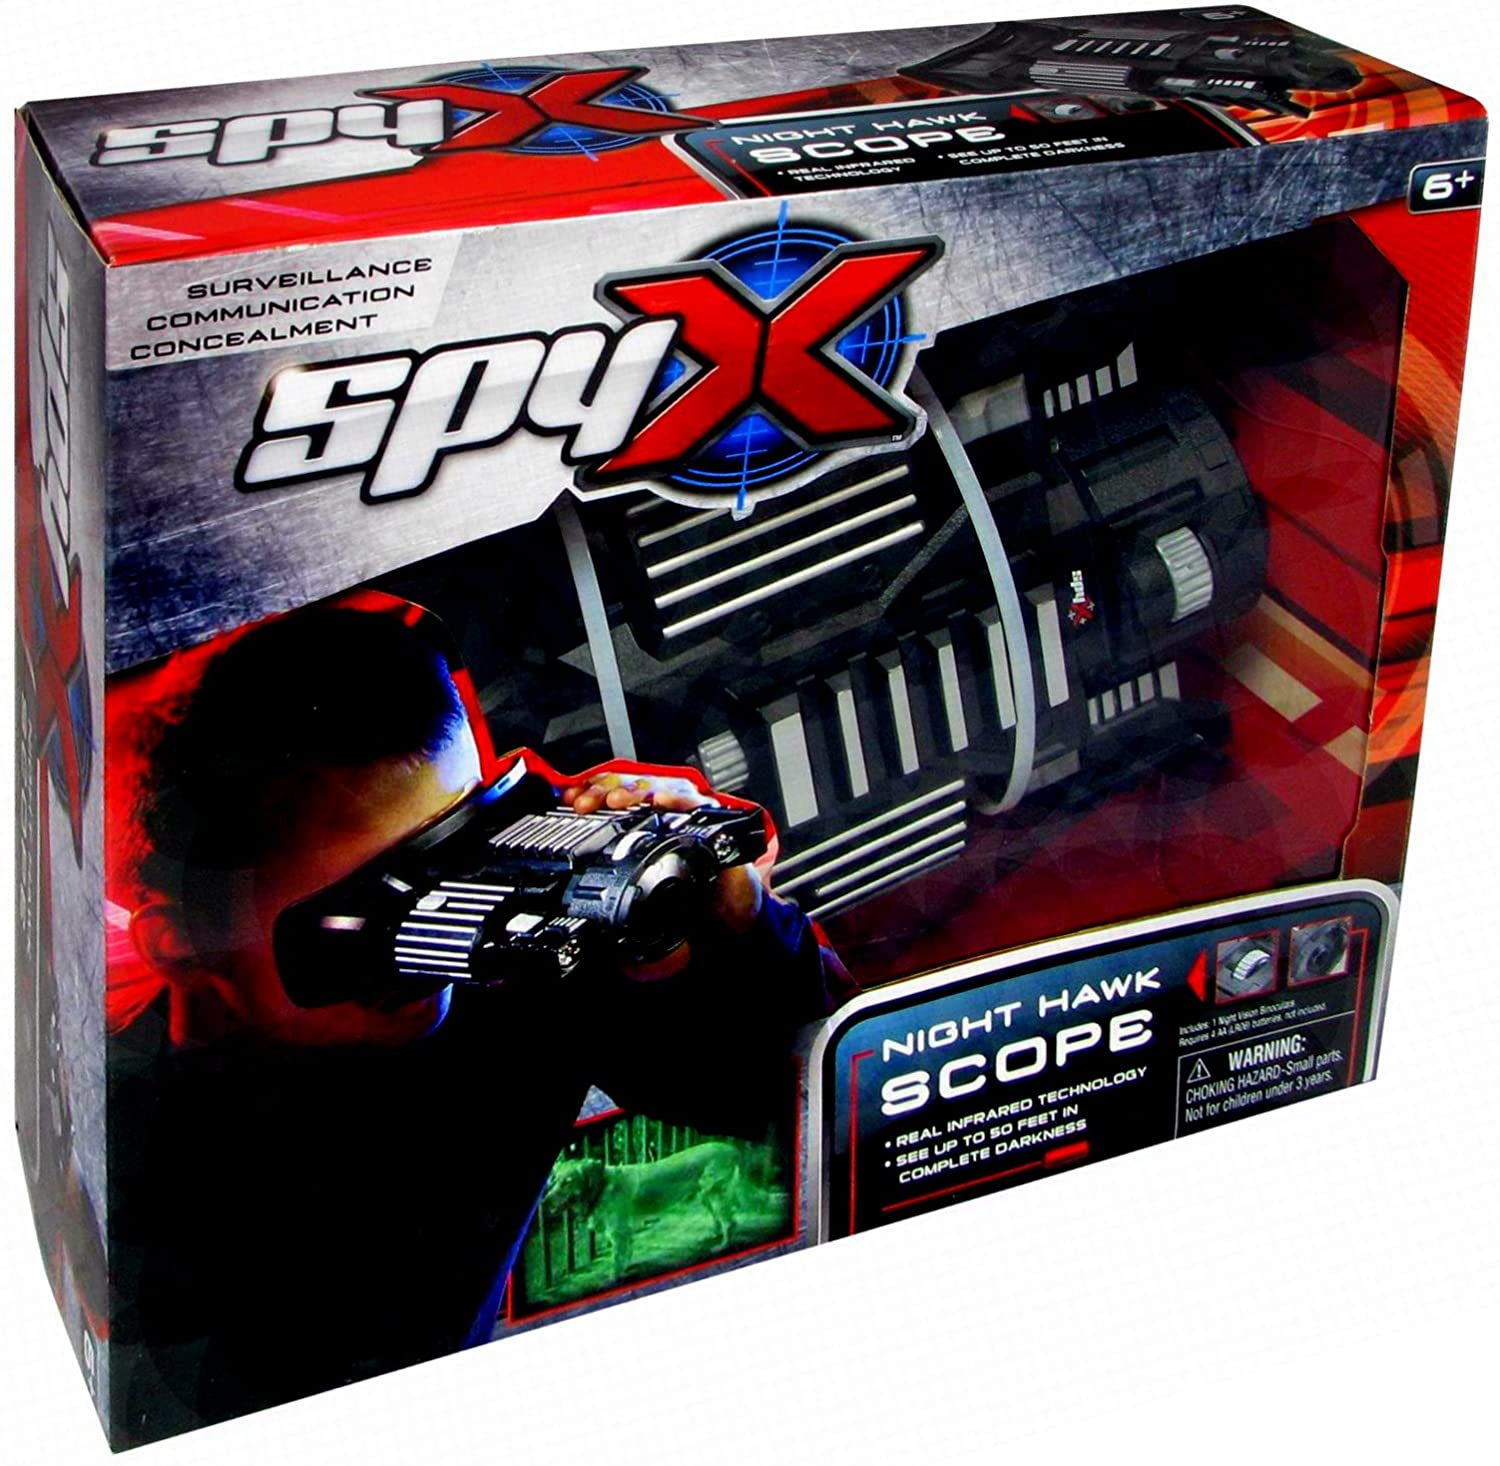 Spy X Night Hawk Scope - JKA Toys